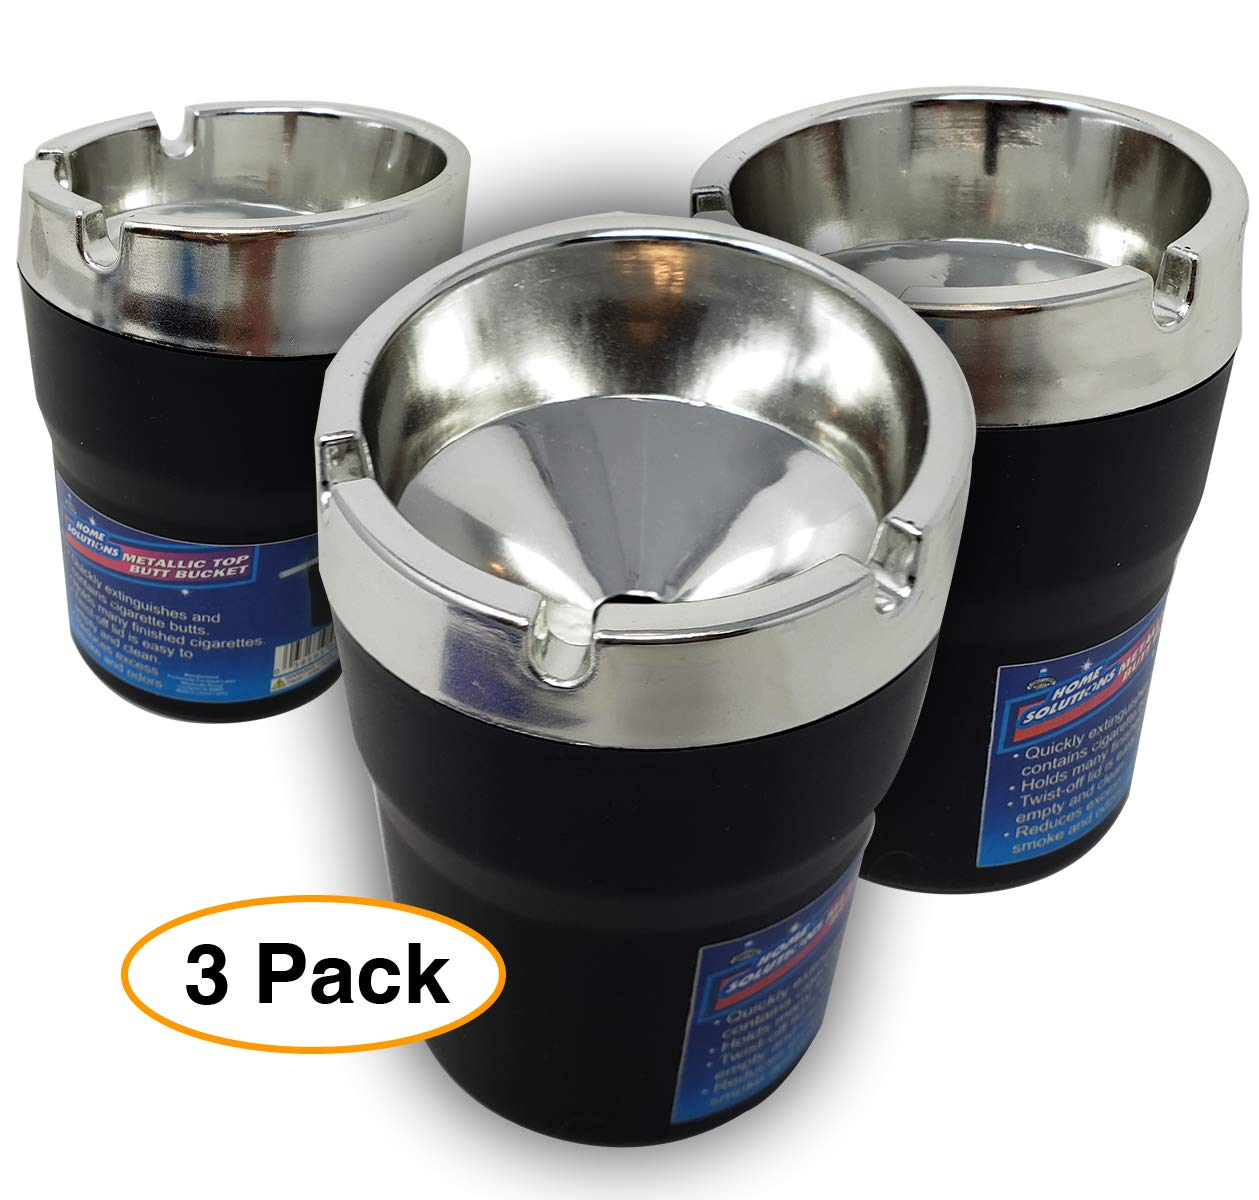 Home Solutions Metallic Portable Car Ashtray (3 Pack) Vehicle auto Cup Holder Ashtrays Plastic Top Butt Bucket